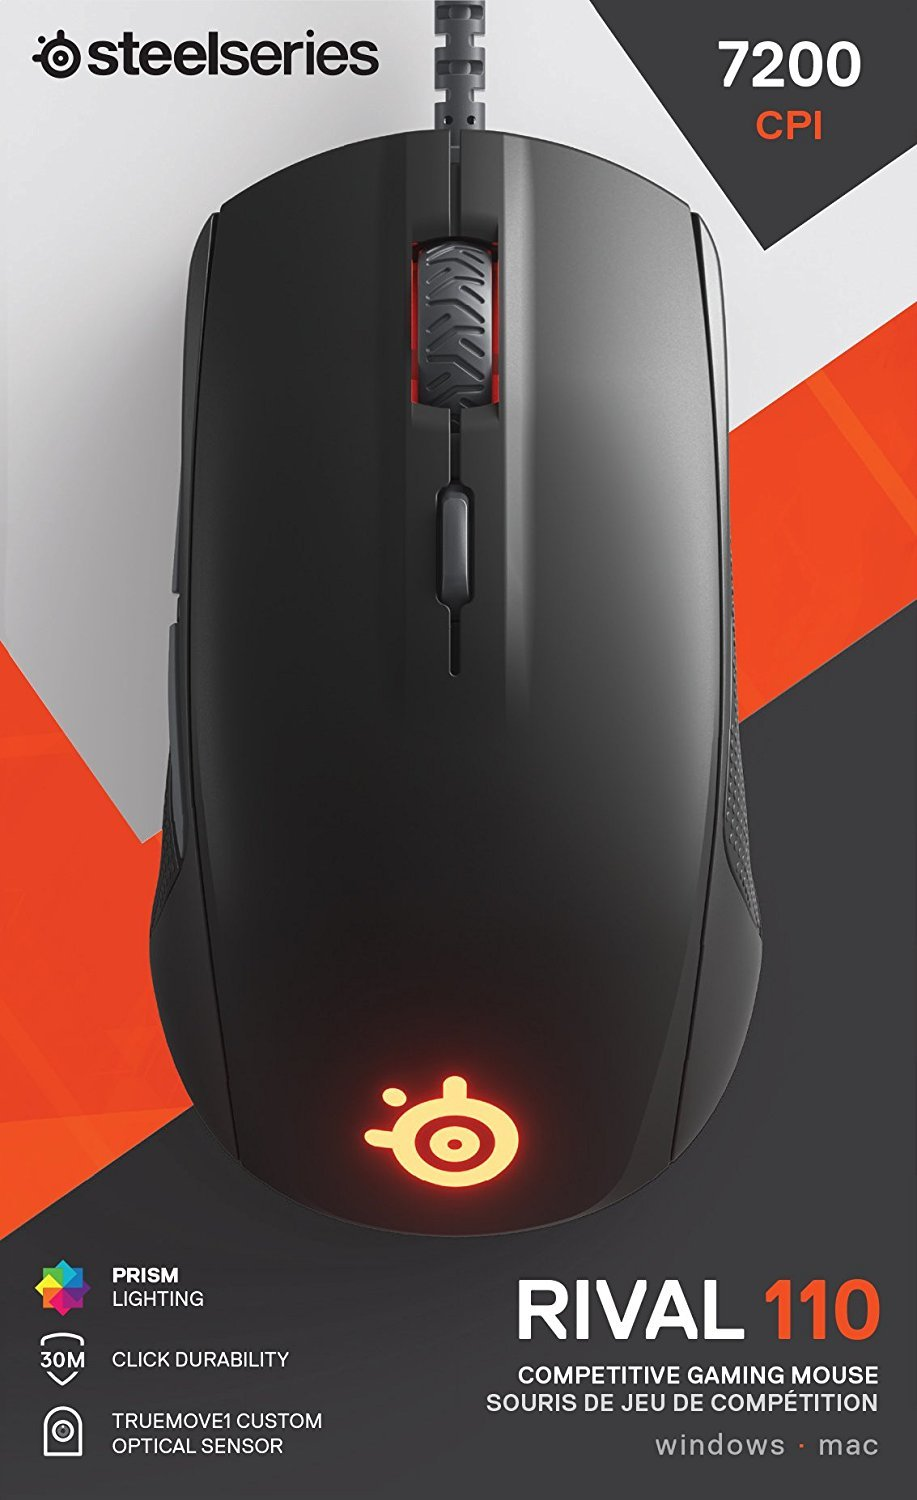 SteelSeries Rival 110 Gaming Mouse for PC Games image